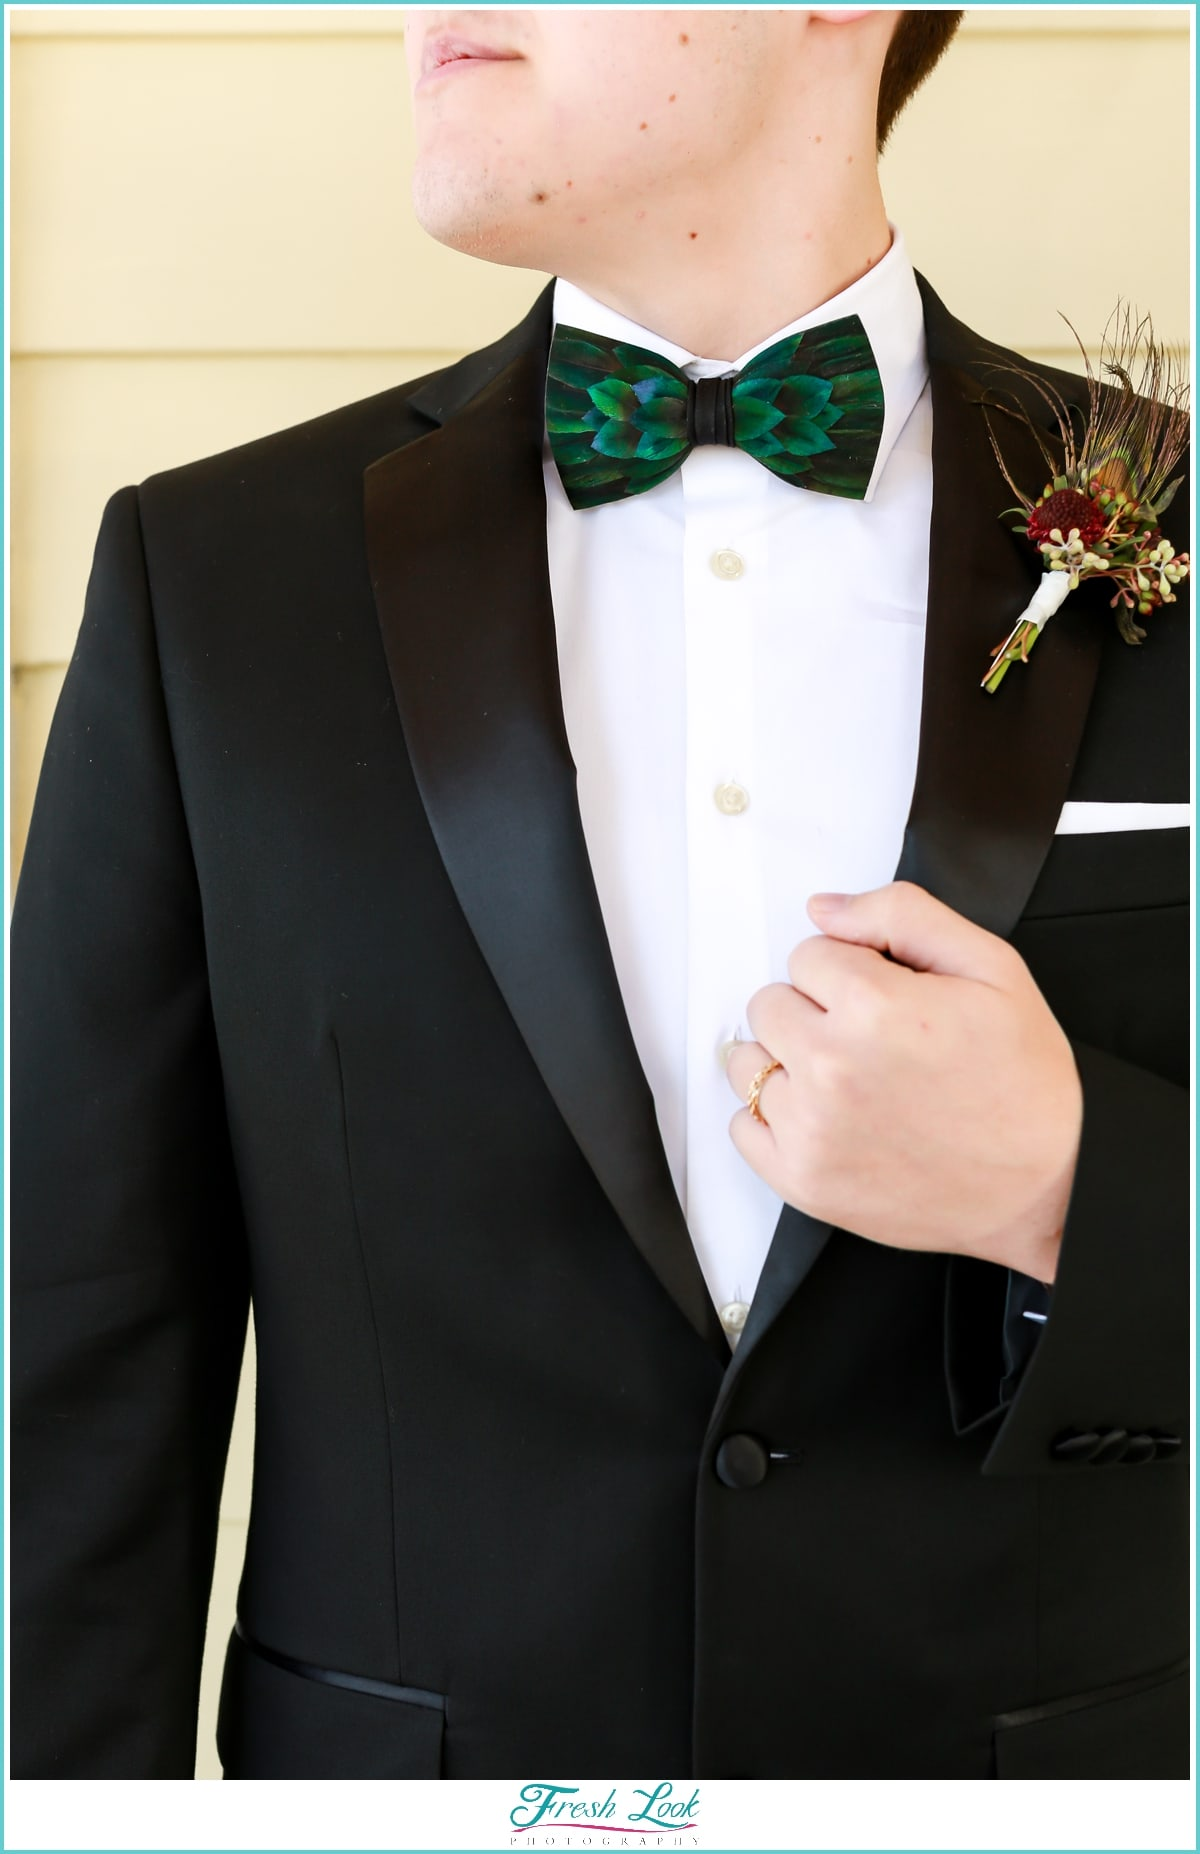 bowtie and boutonniere details